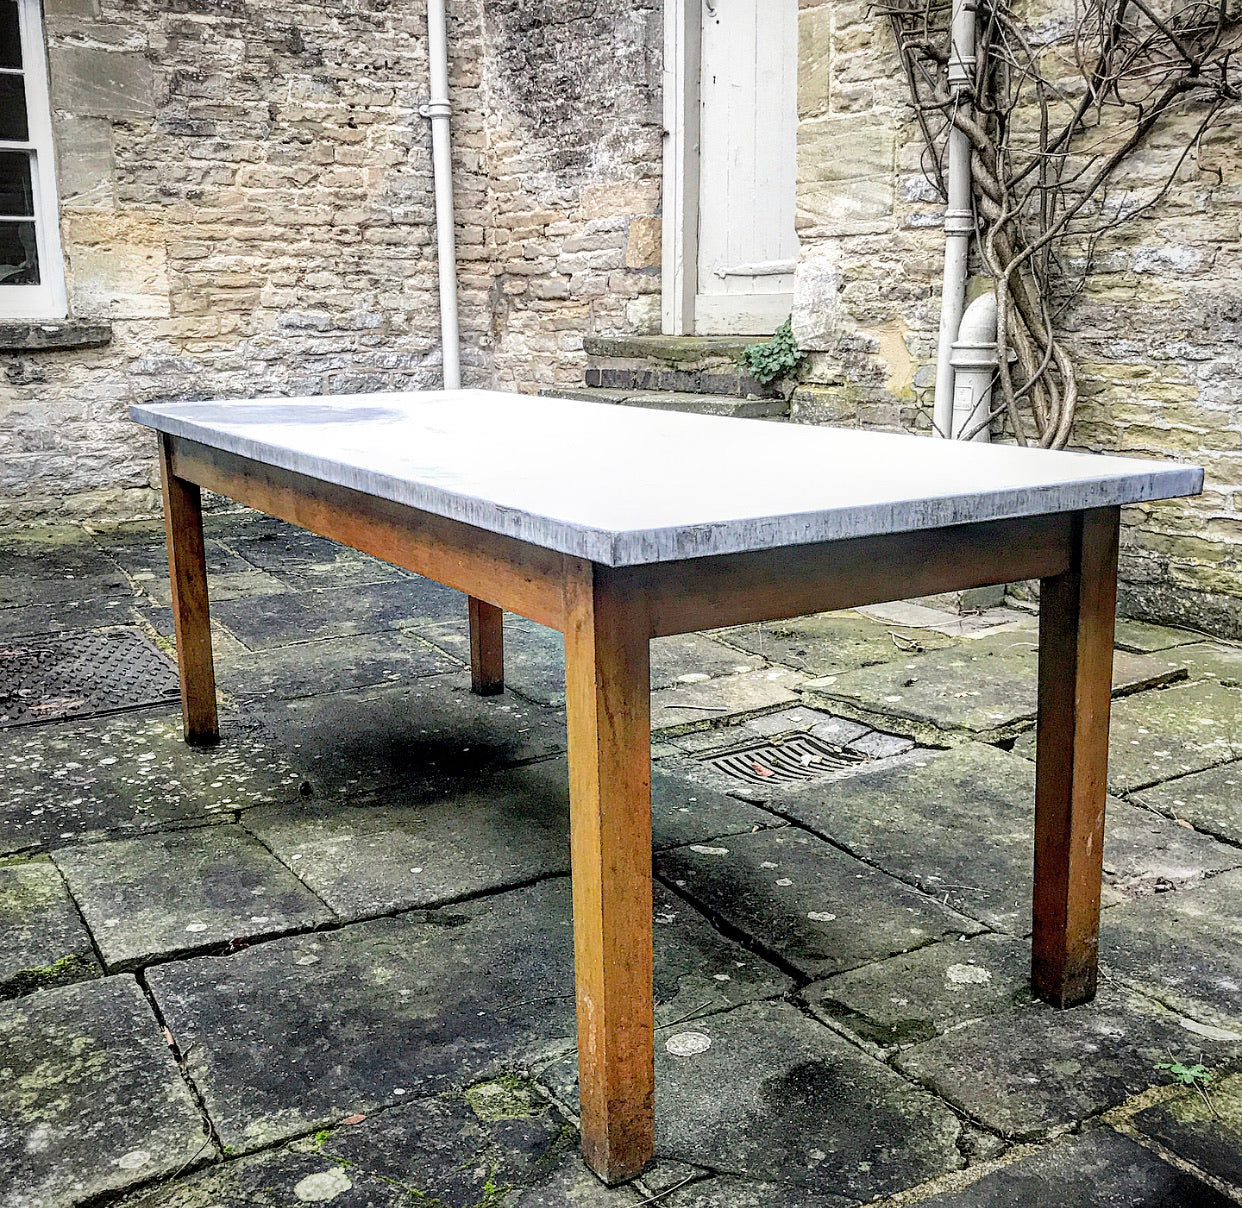 20th century Chemistry Table with Zinc Top